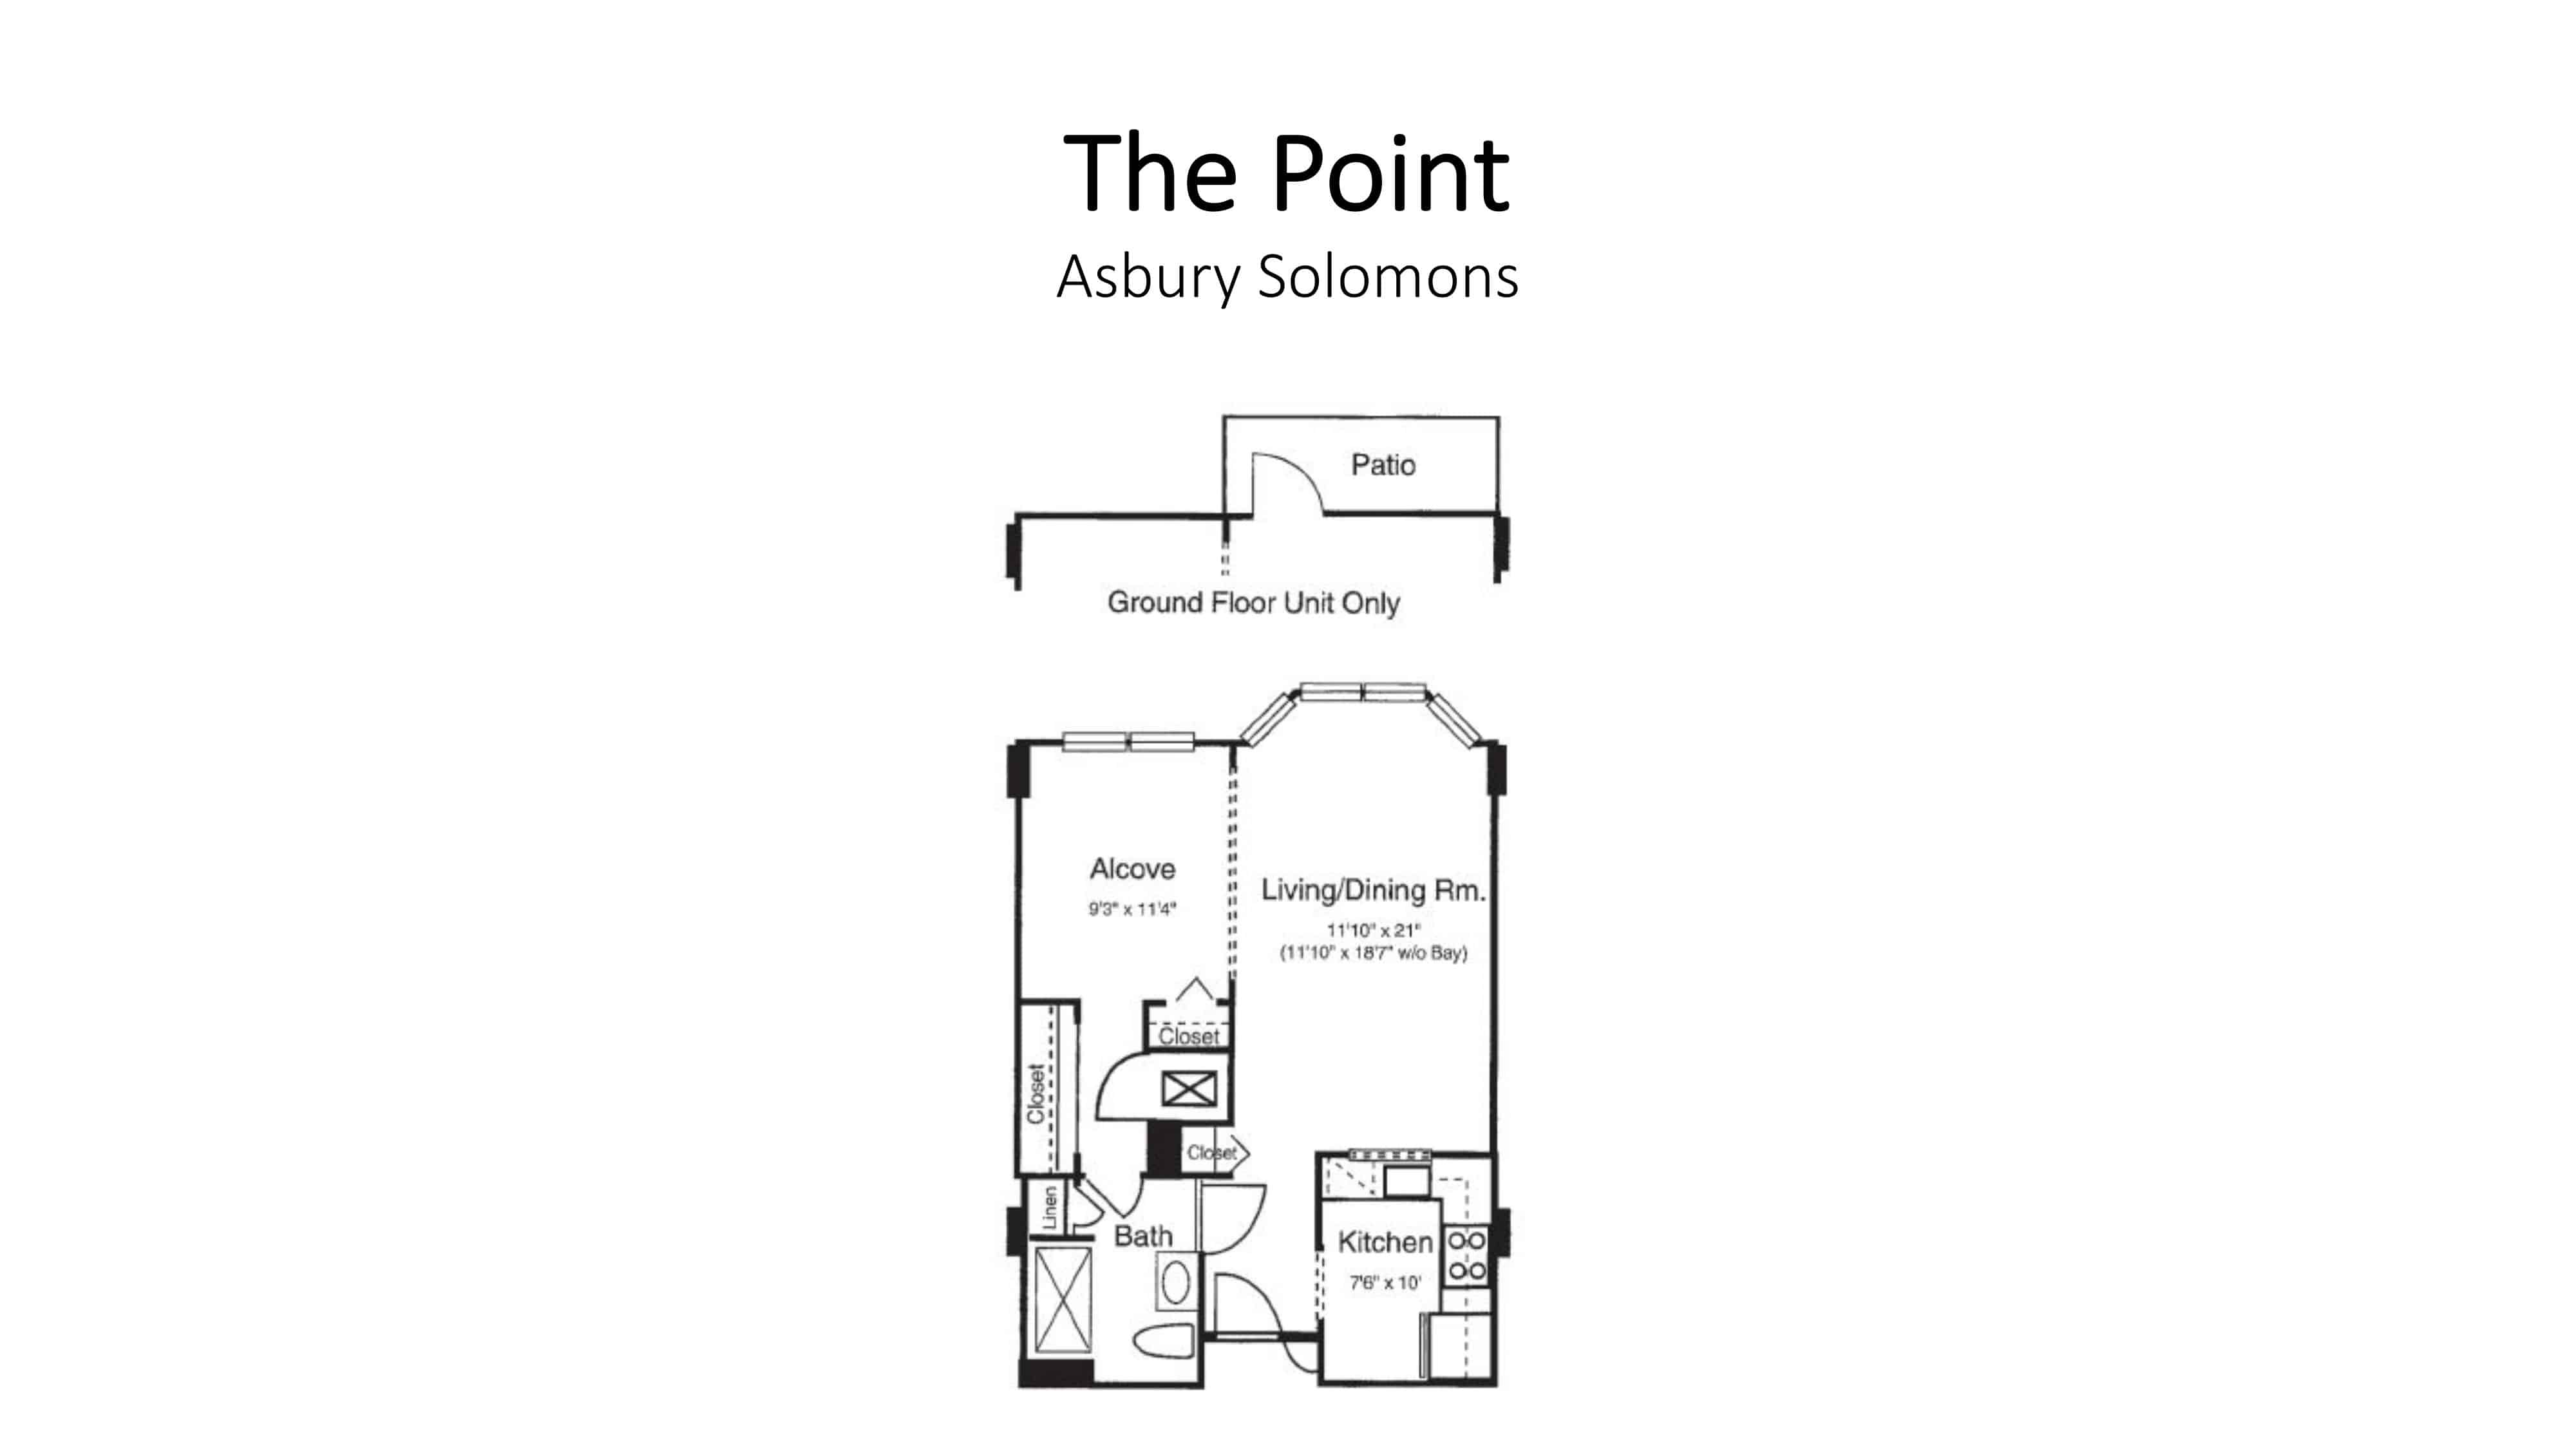 AS_The_Point